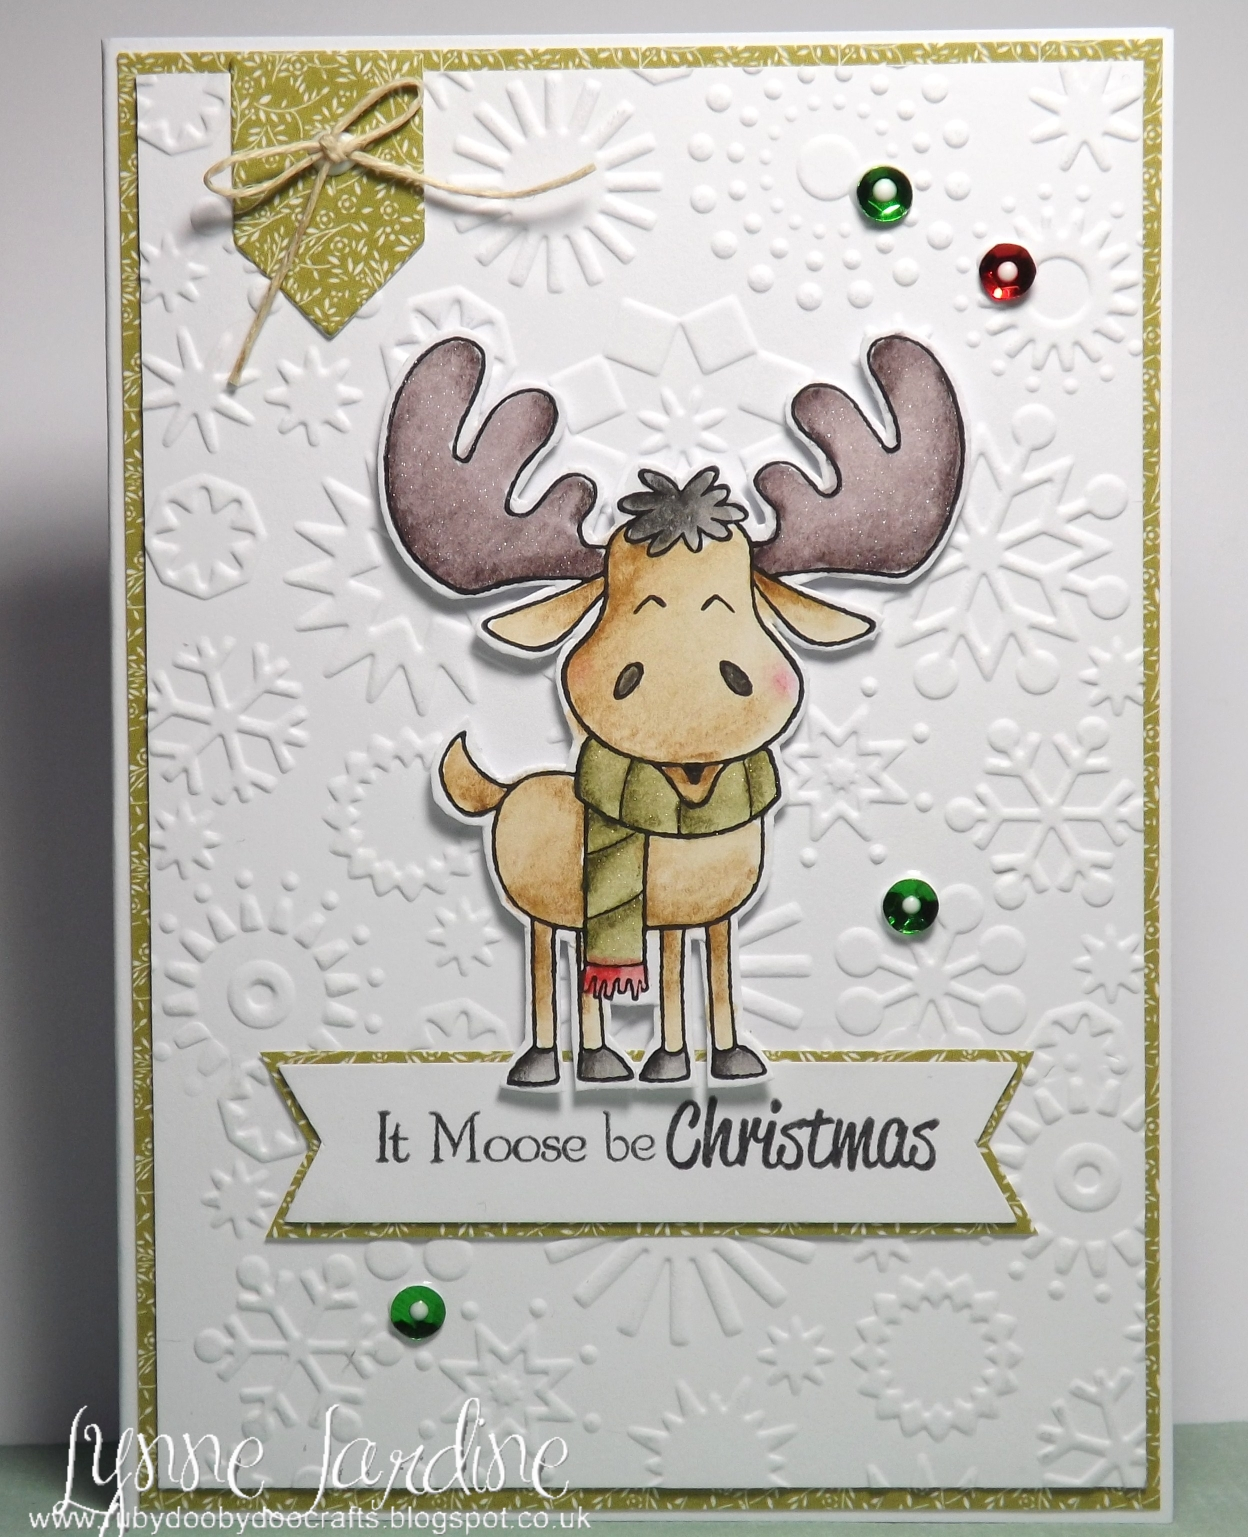 Ruby-Dooby-Doo Crafts: It Moose be Christmas